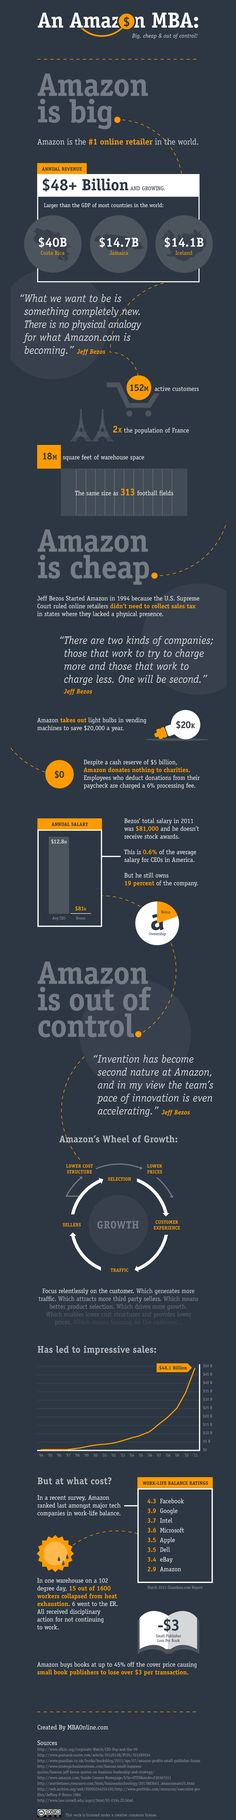 How #Amazon Saves a Ton of Money #infographic #pinterest